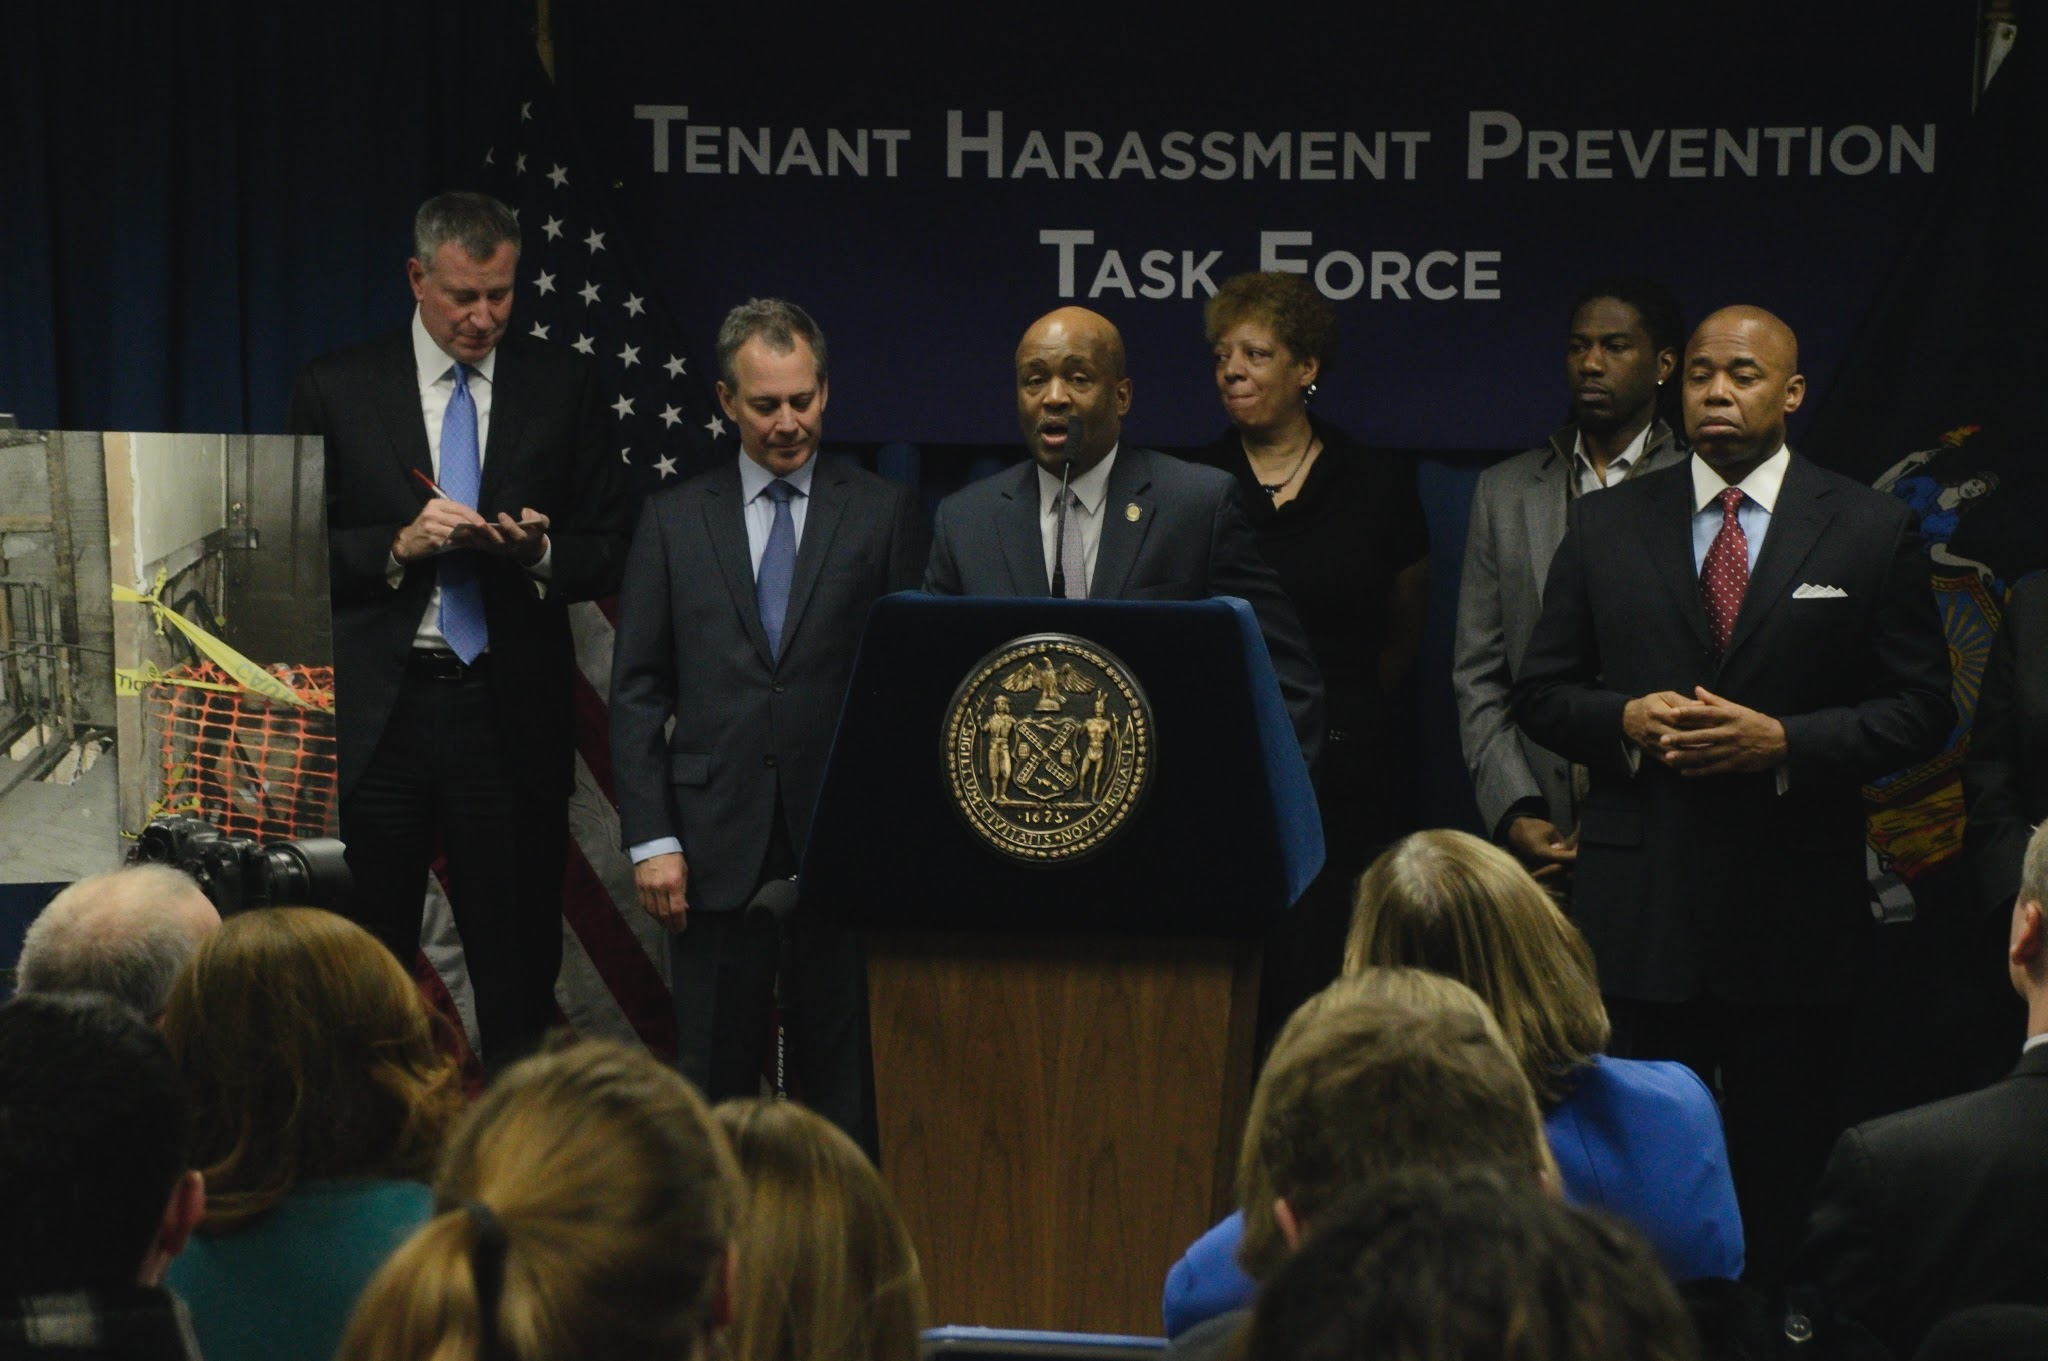 Tenant Harassment Prevention Task Force Launches in ...